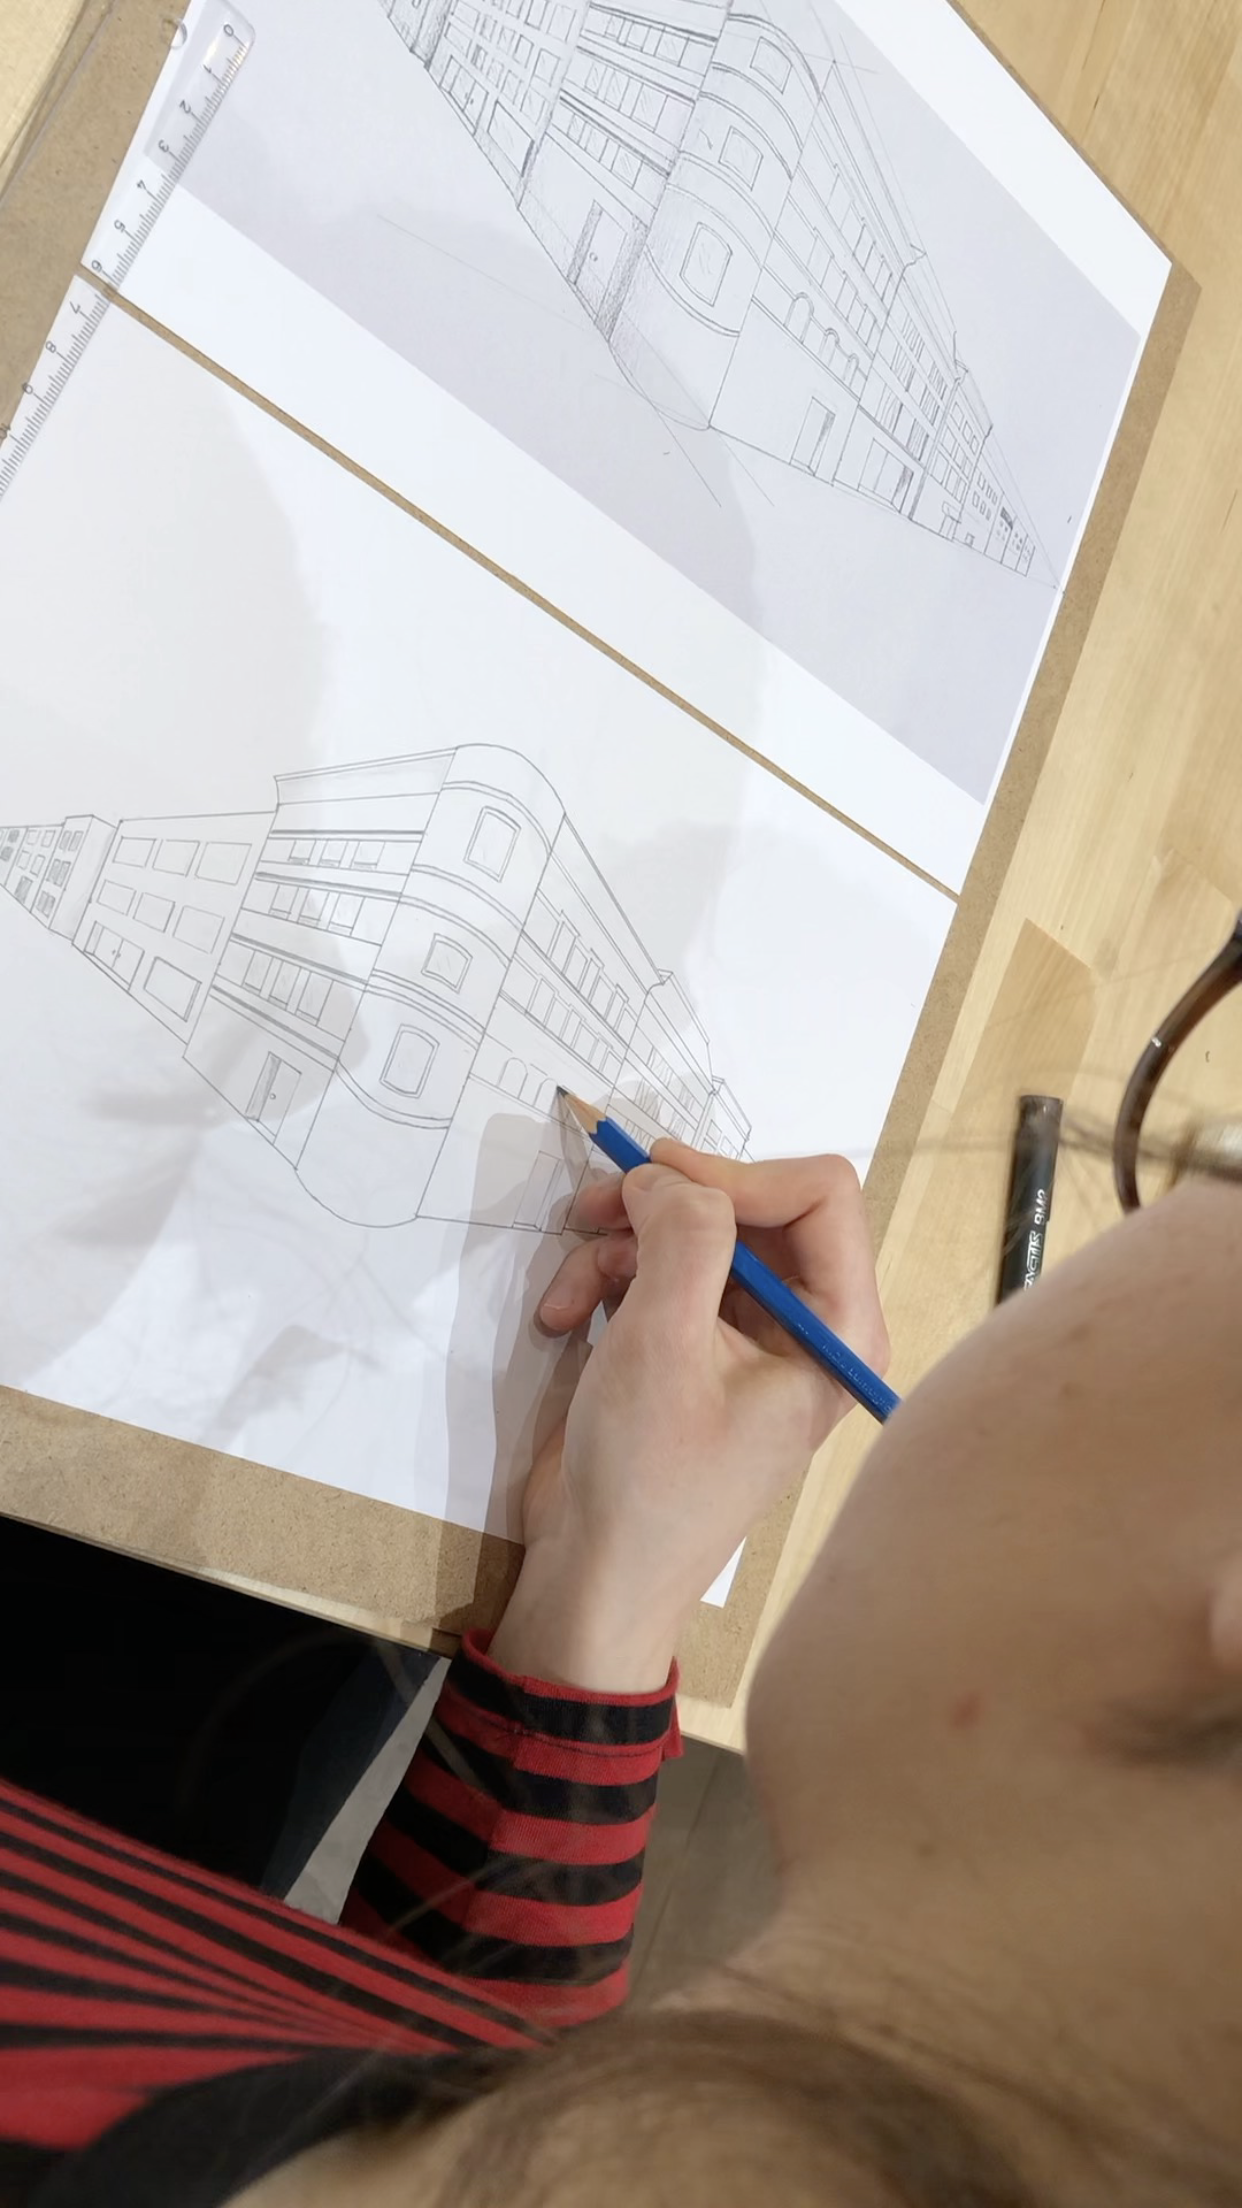 perspective drawing course may fine art studio